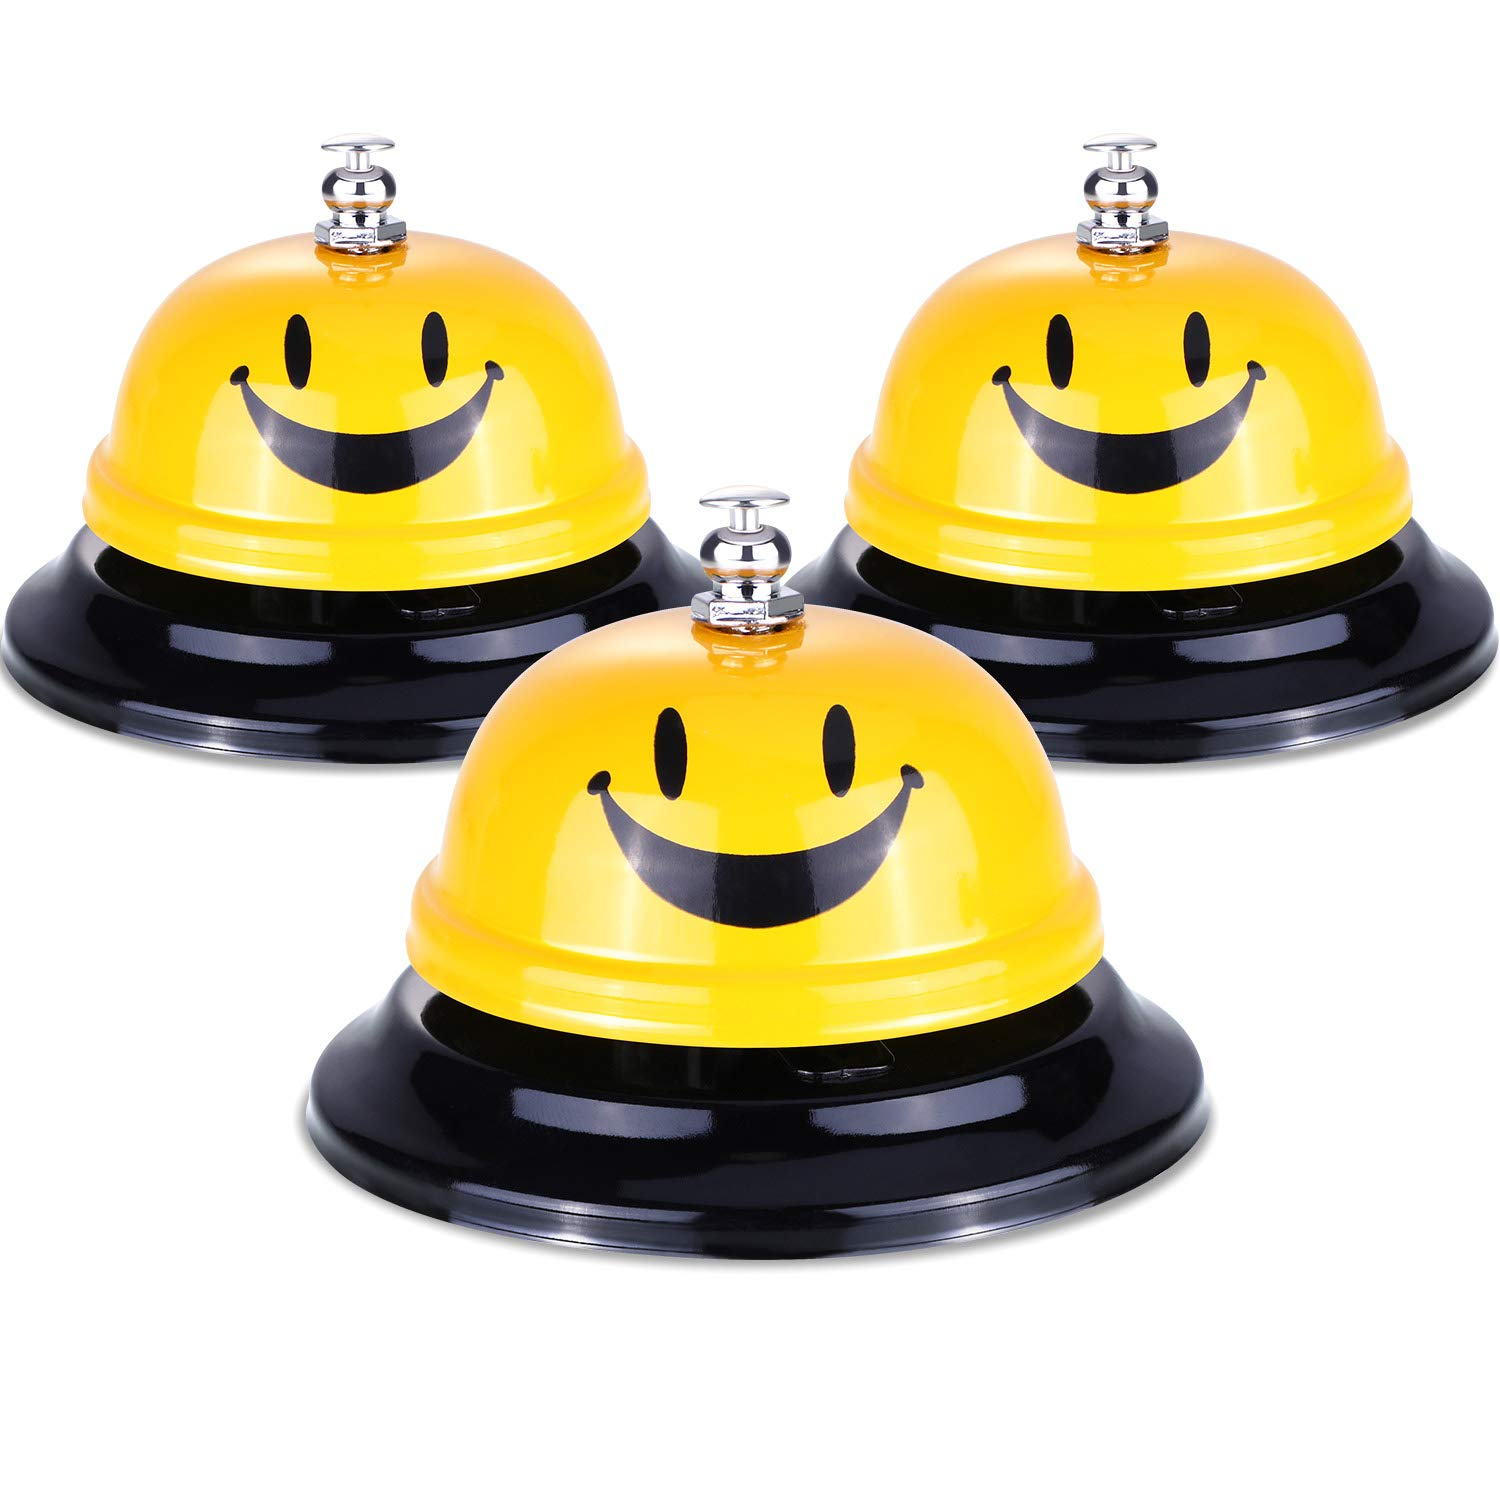 Leinuosen 3 Pieces Call Bell Customer Service Bell for Classroom Office Reception Restaurant Using, 3.3 Inches Diameter